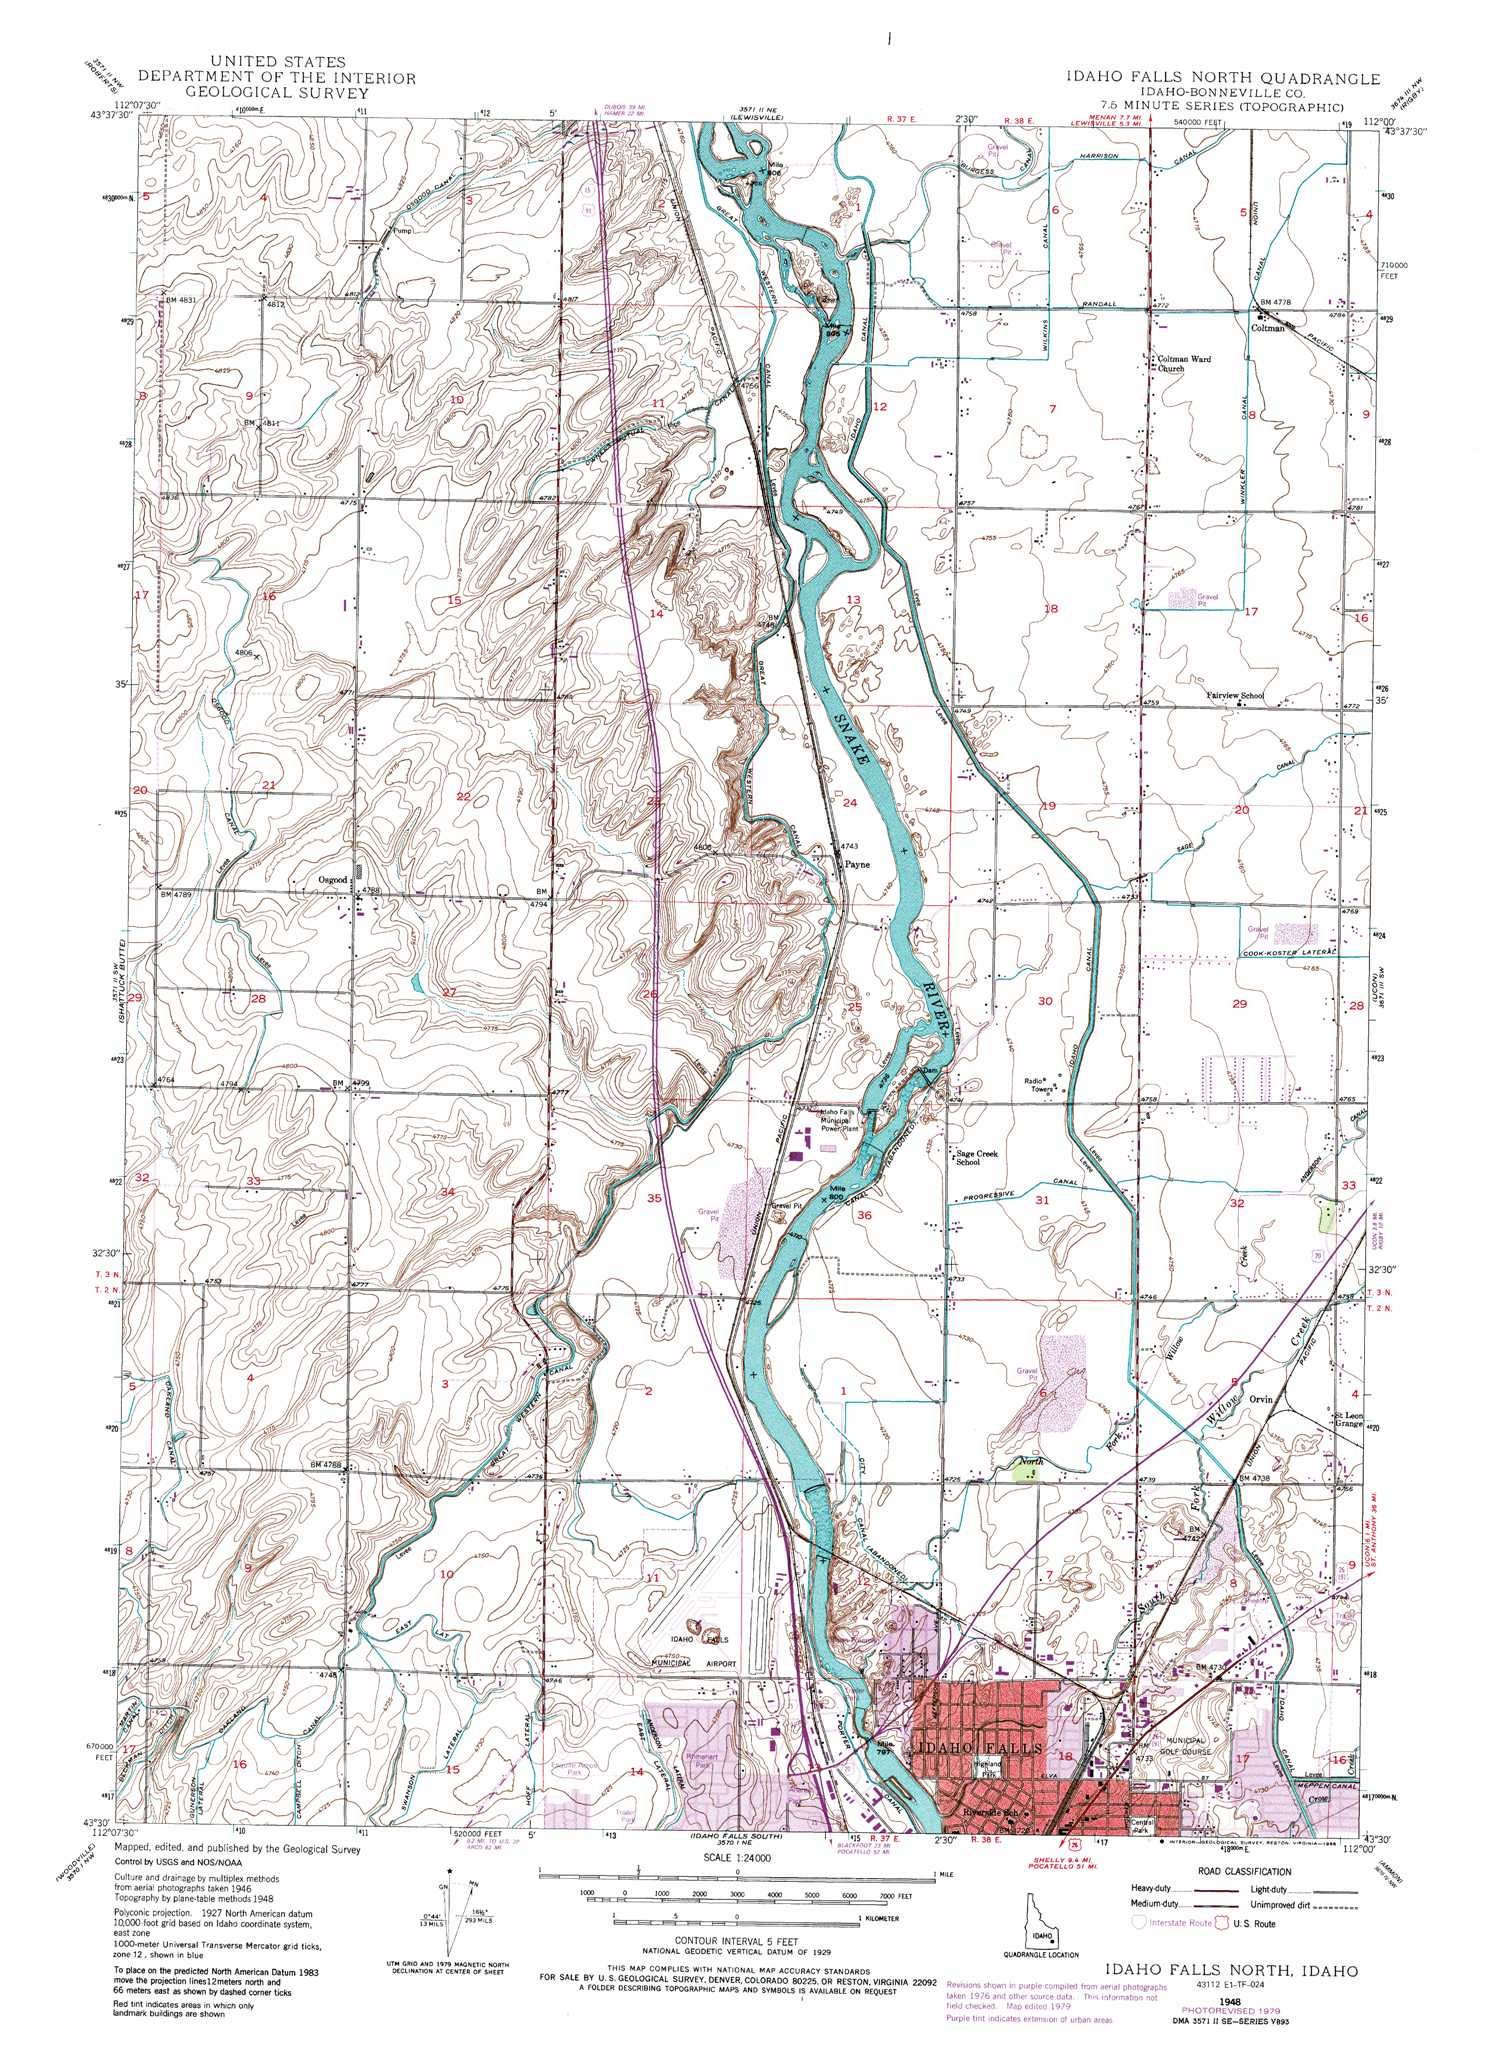 Idaho Falls North topographic map, ID - USGS Topo Quad 43112e1